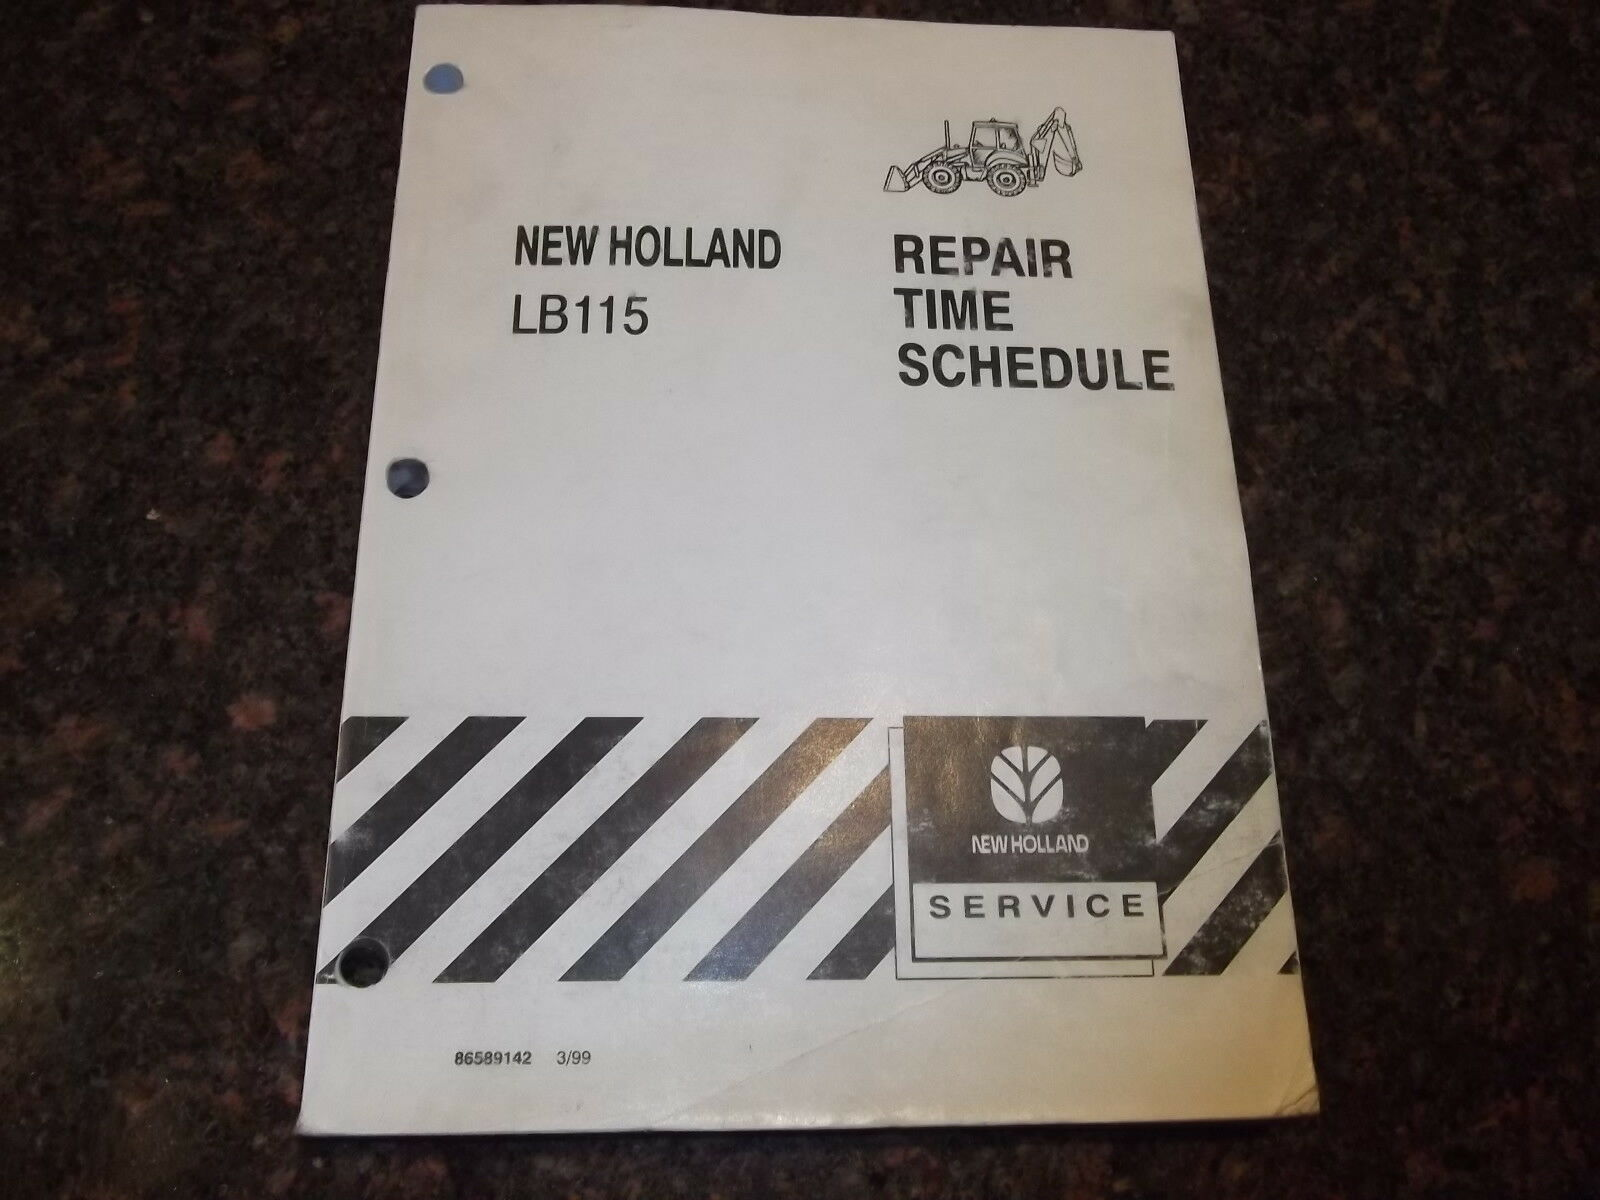 New Holland Lb115 Tractor Loader Backhoe Repair Time Schedule Manual 1 of  1Only 1 available ...